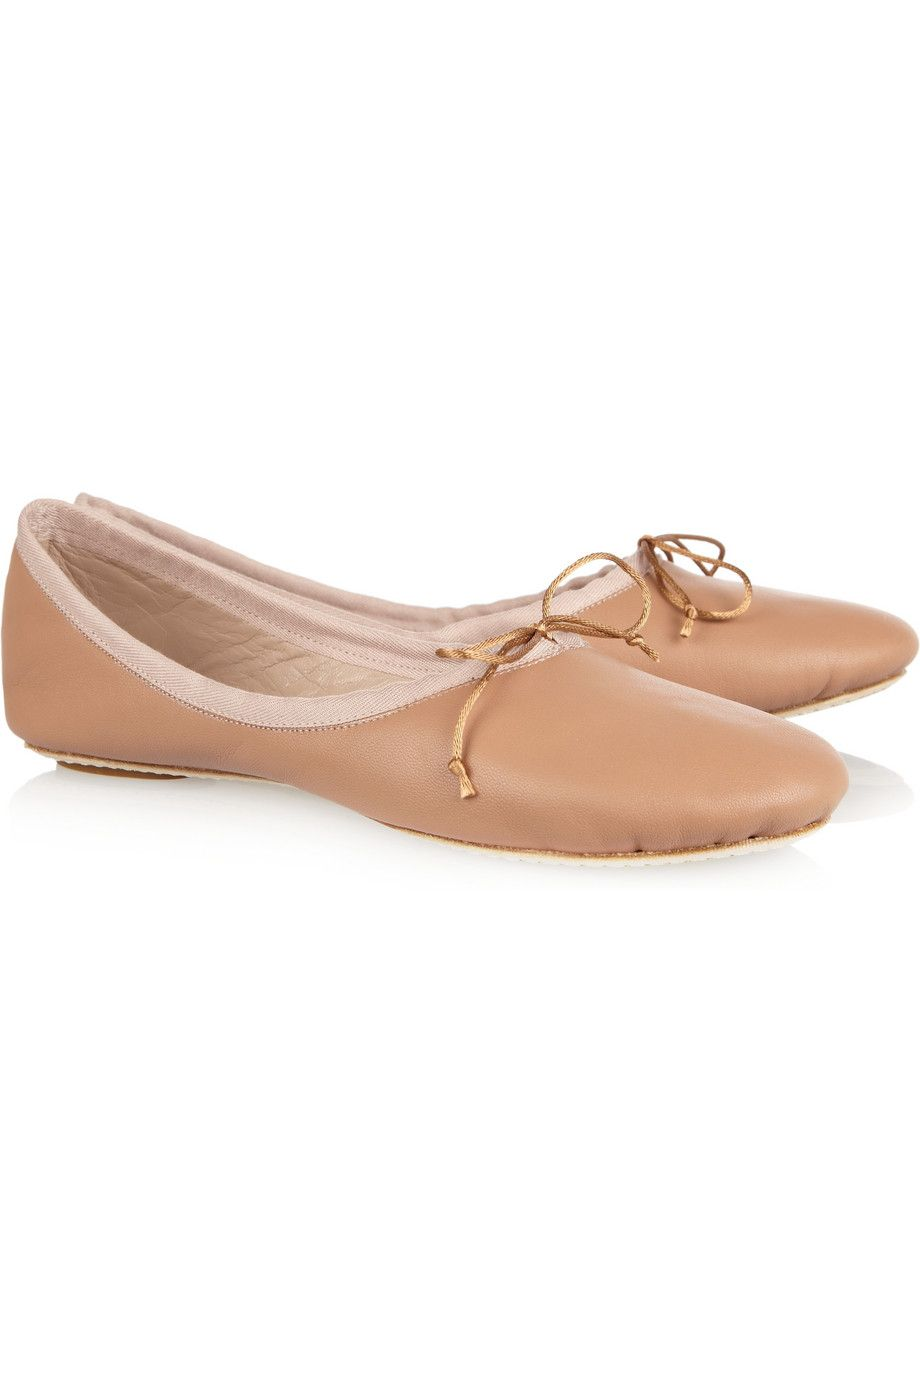 Chloé Leather Ballet Slippers